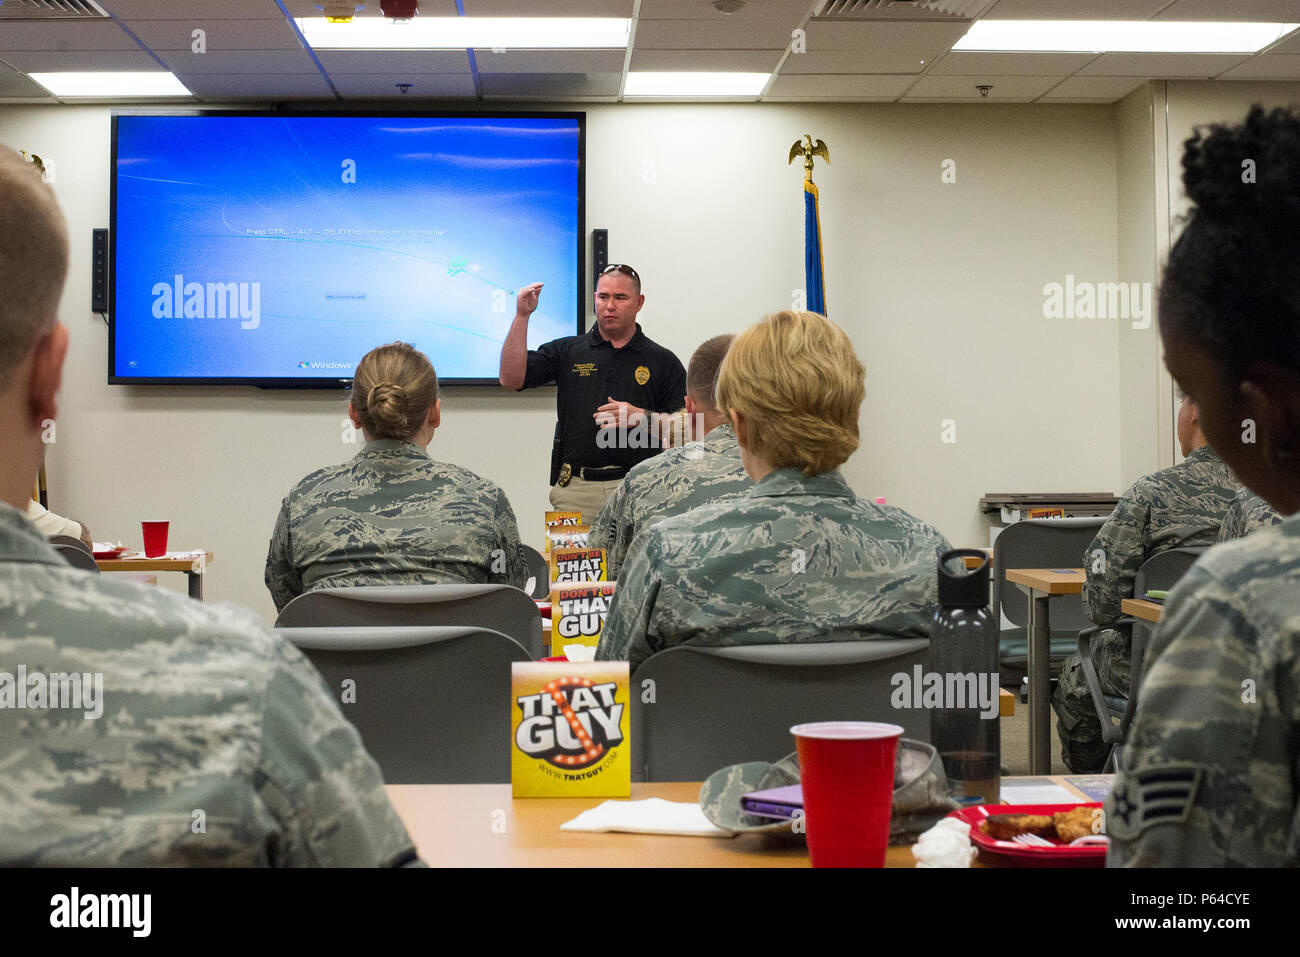 Valdosta Police Department patrolman, Alvin May, briefs Airmen on the dangers of drinking and driving during a lunch and learn, April 8, 2016, at Moody Air Force Base, Ga. Moody invited the VPD to speak to Airmen in observation of Alcohol Awareness Month. (U.S. Air Force photo by Airman Daniel Snider/Released) - Stock Image